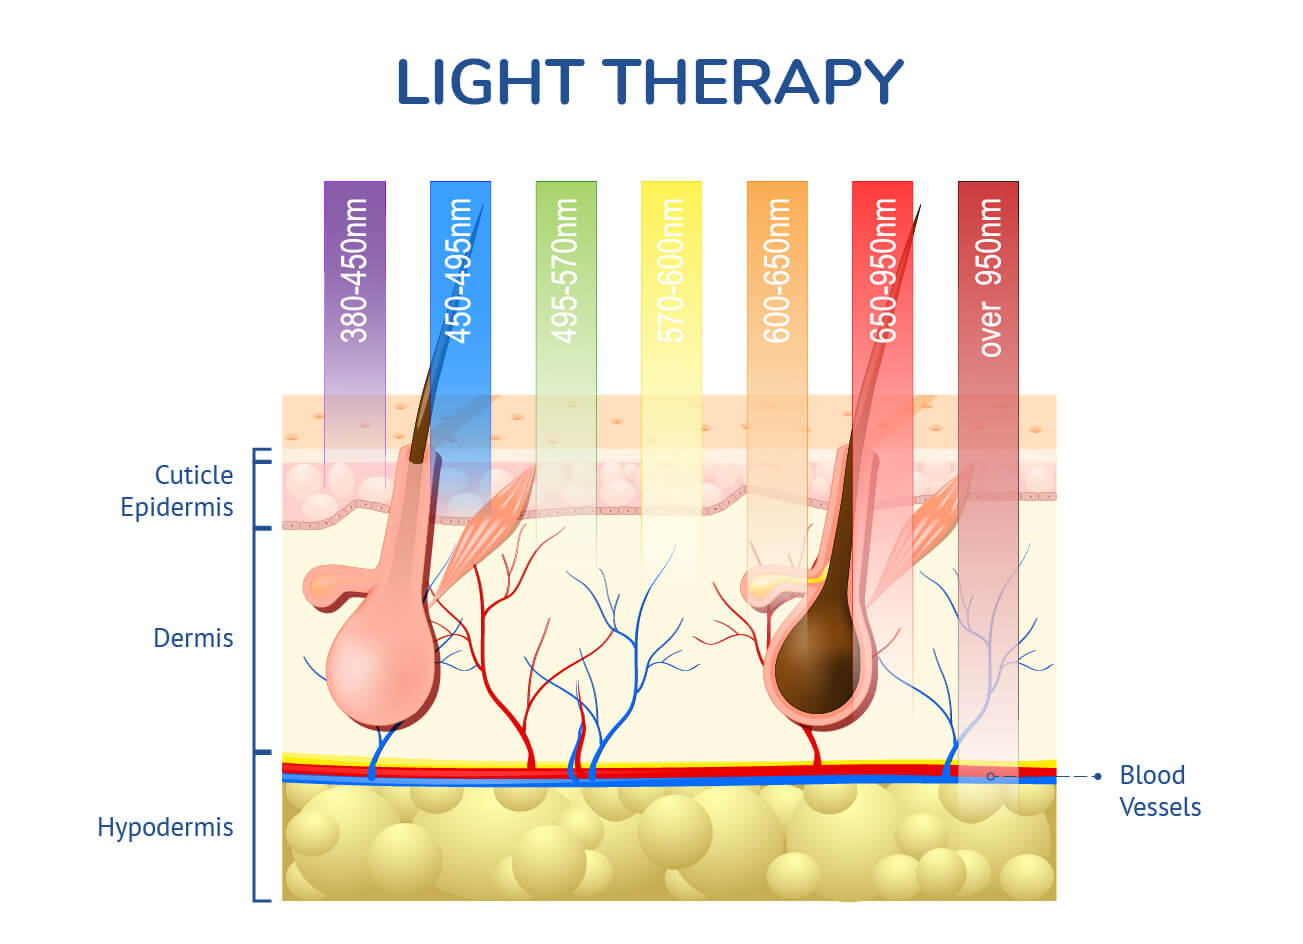 LED light therapy infographic